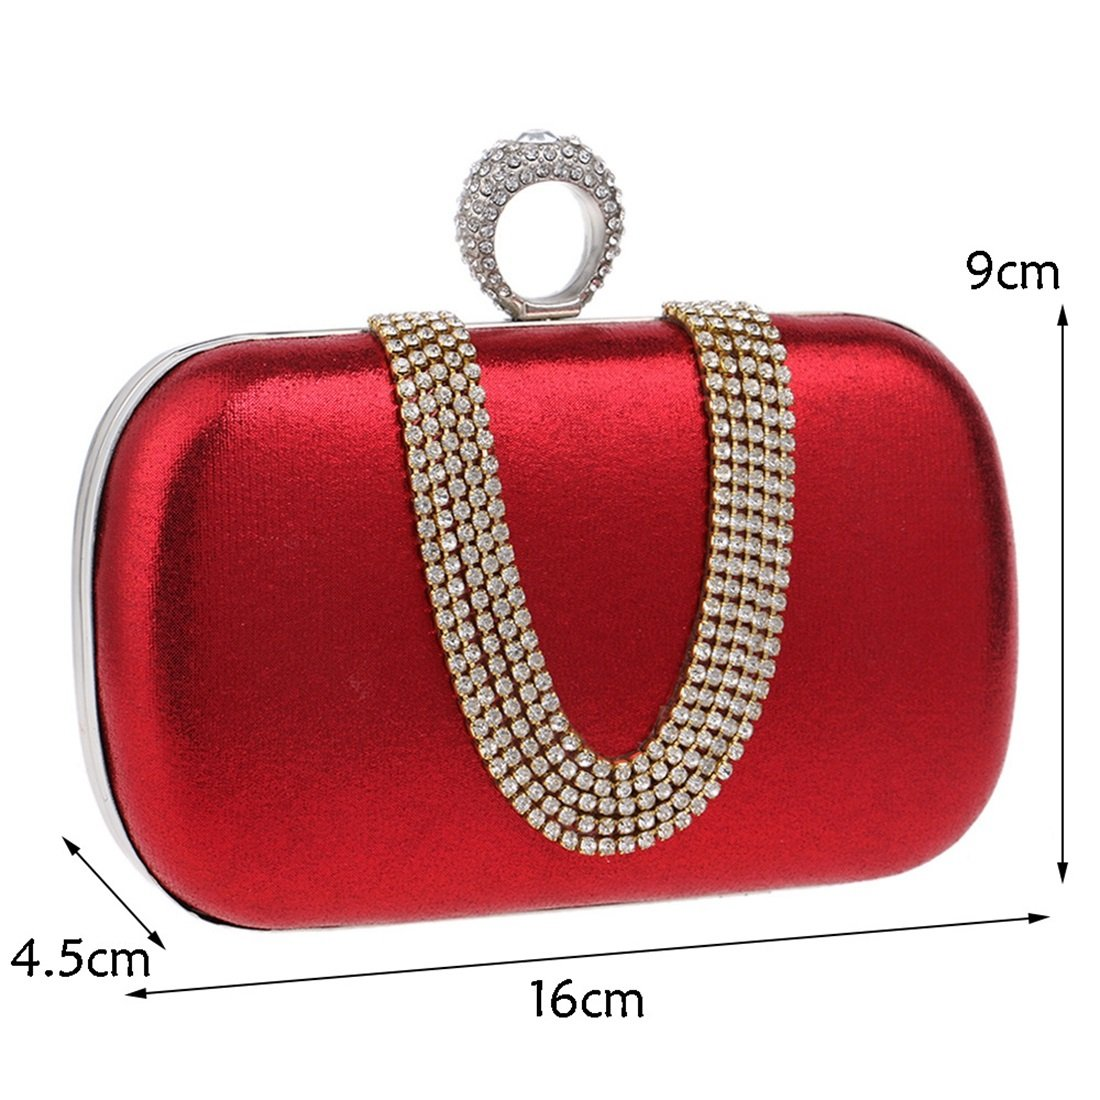 QARYYQ Diamond Evening Bag Exquisite U-Shaped Drill Hand Take Dinner Bag Fashion Banquet Lady Small Bag Evening Package Color : Red